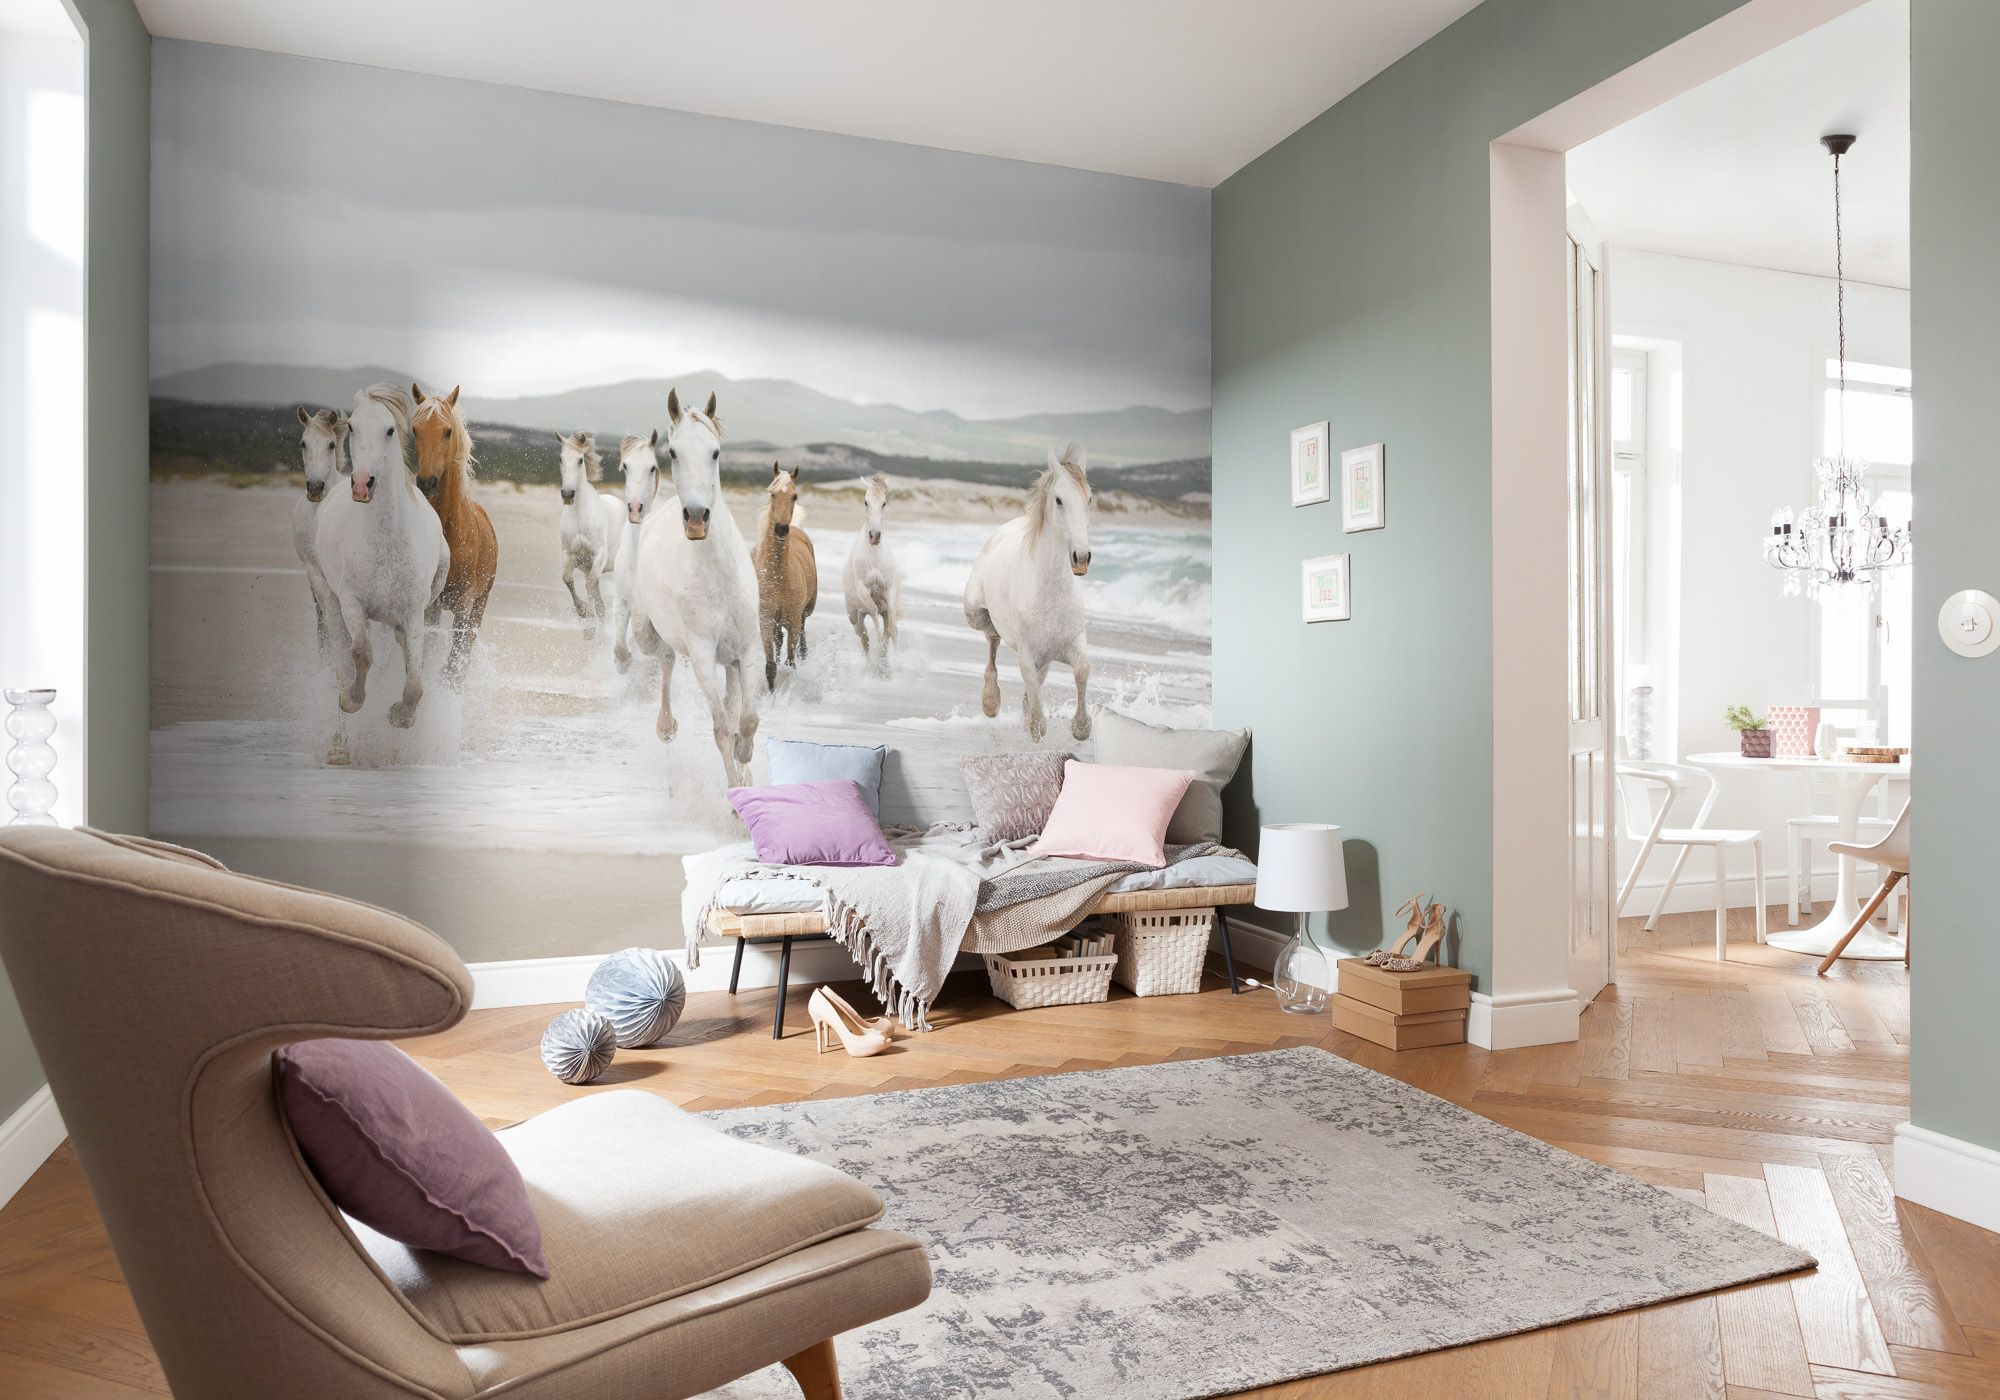 White horses paper wallpaper homewallmurals for Poster jugendzimmer